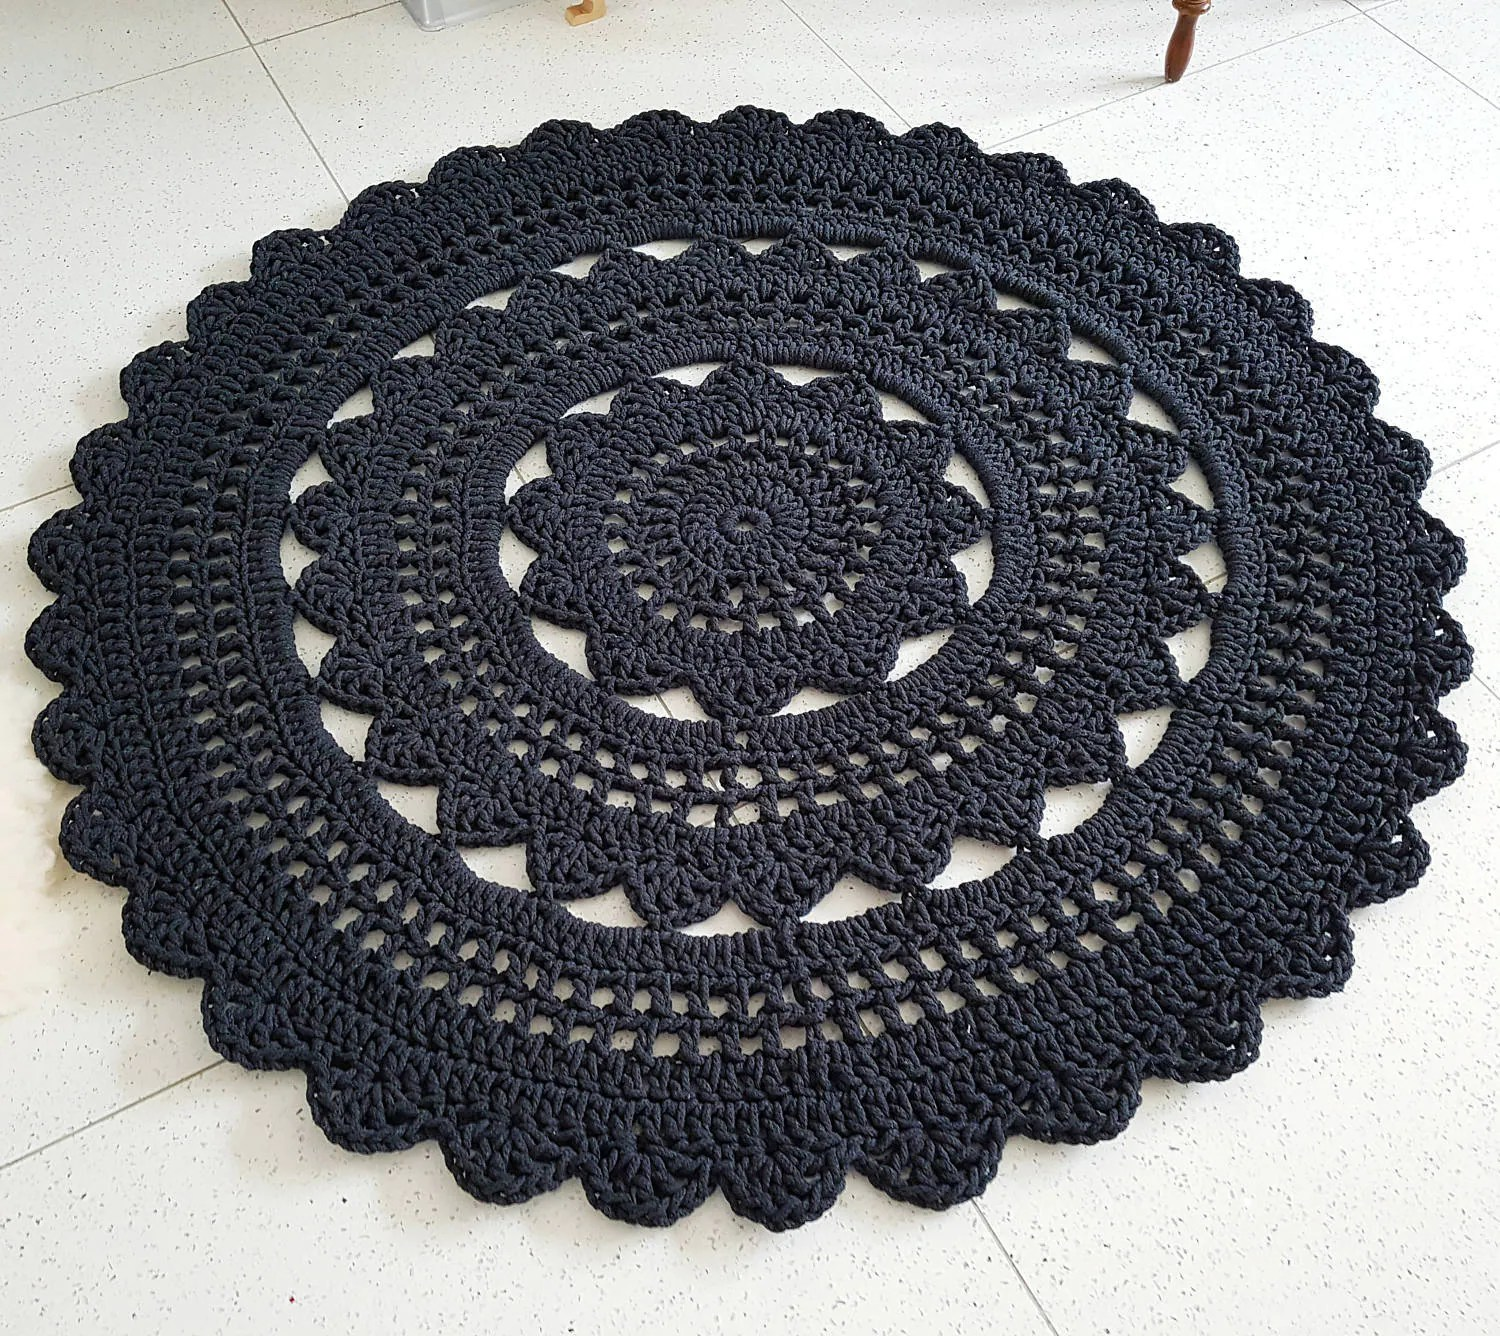 Teppich Rund Shabby Chic Black Large Doily Rug Tapis Bohemian Hippie Shabby Chic Country Bedroom Rustic Floor Decor Teppich Rund Alfombra Trapillo Modern Carpet